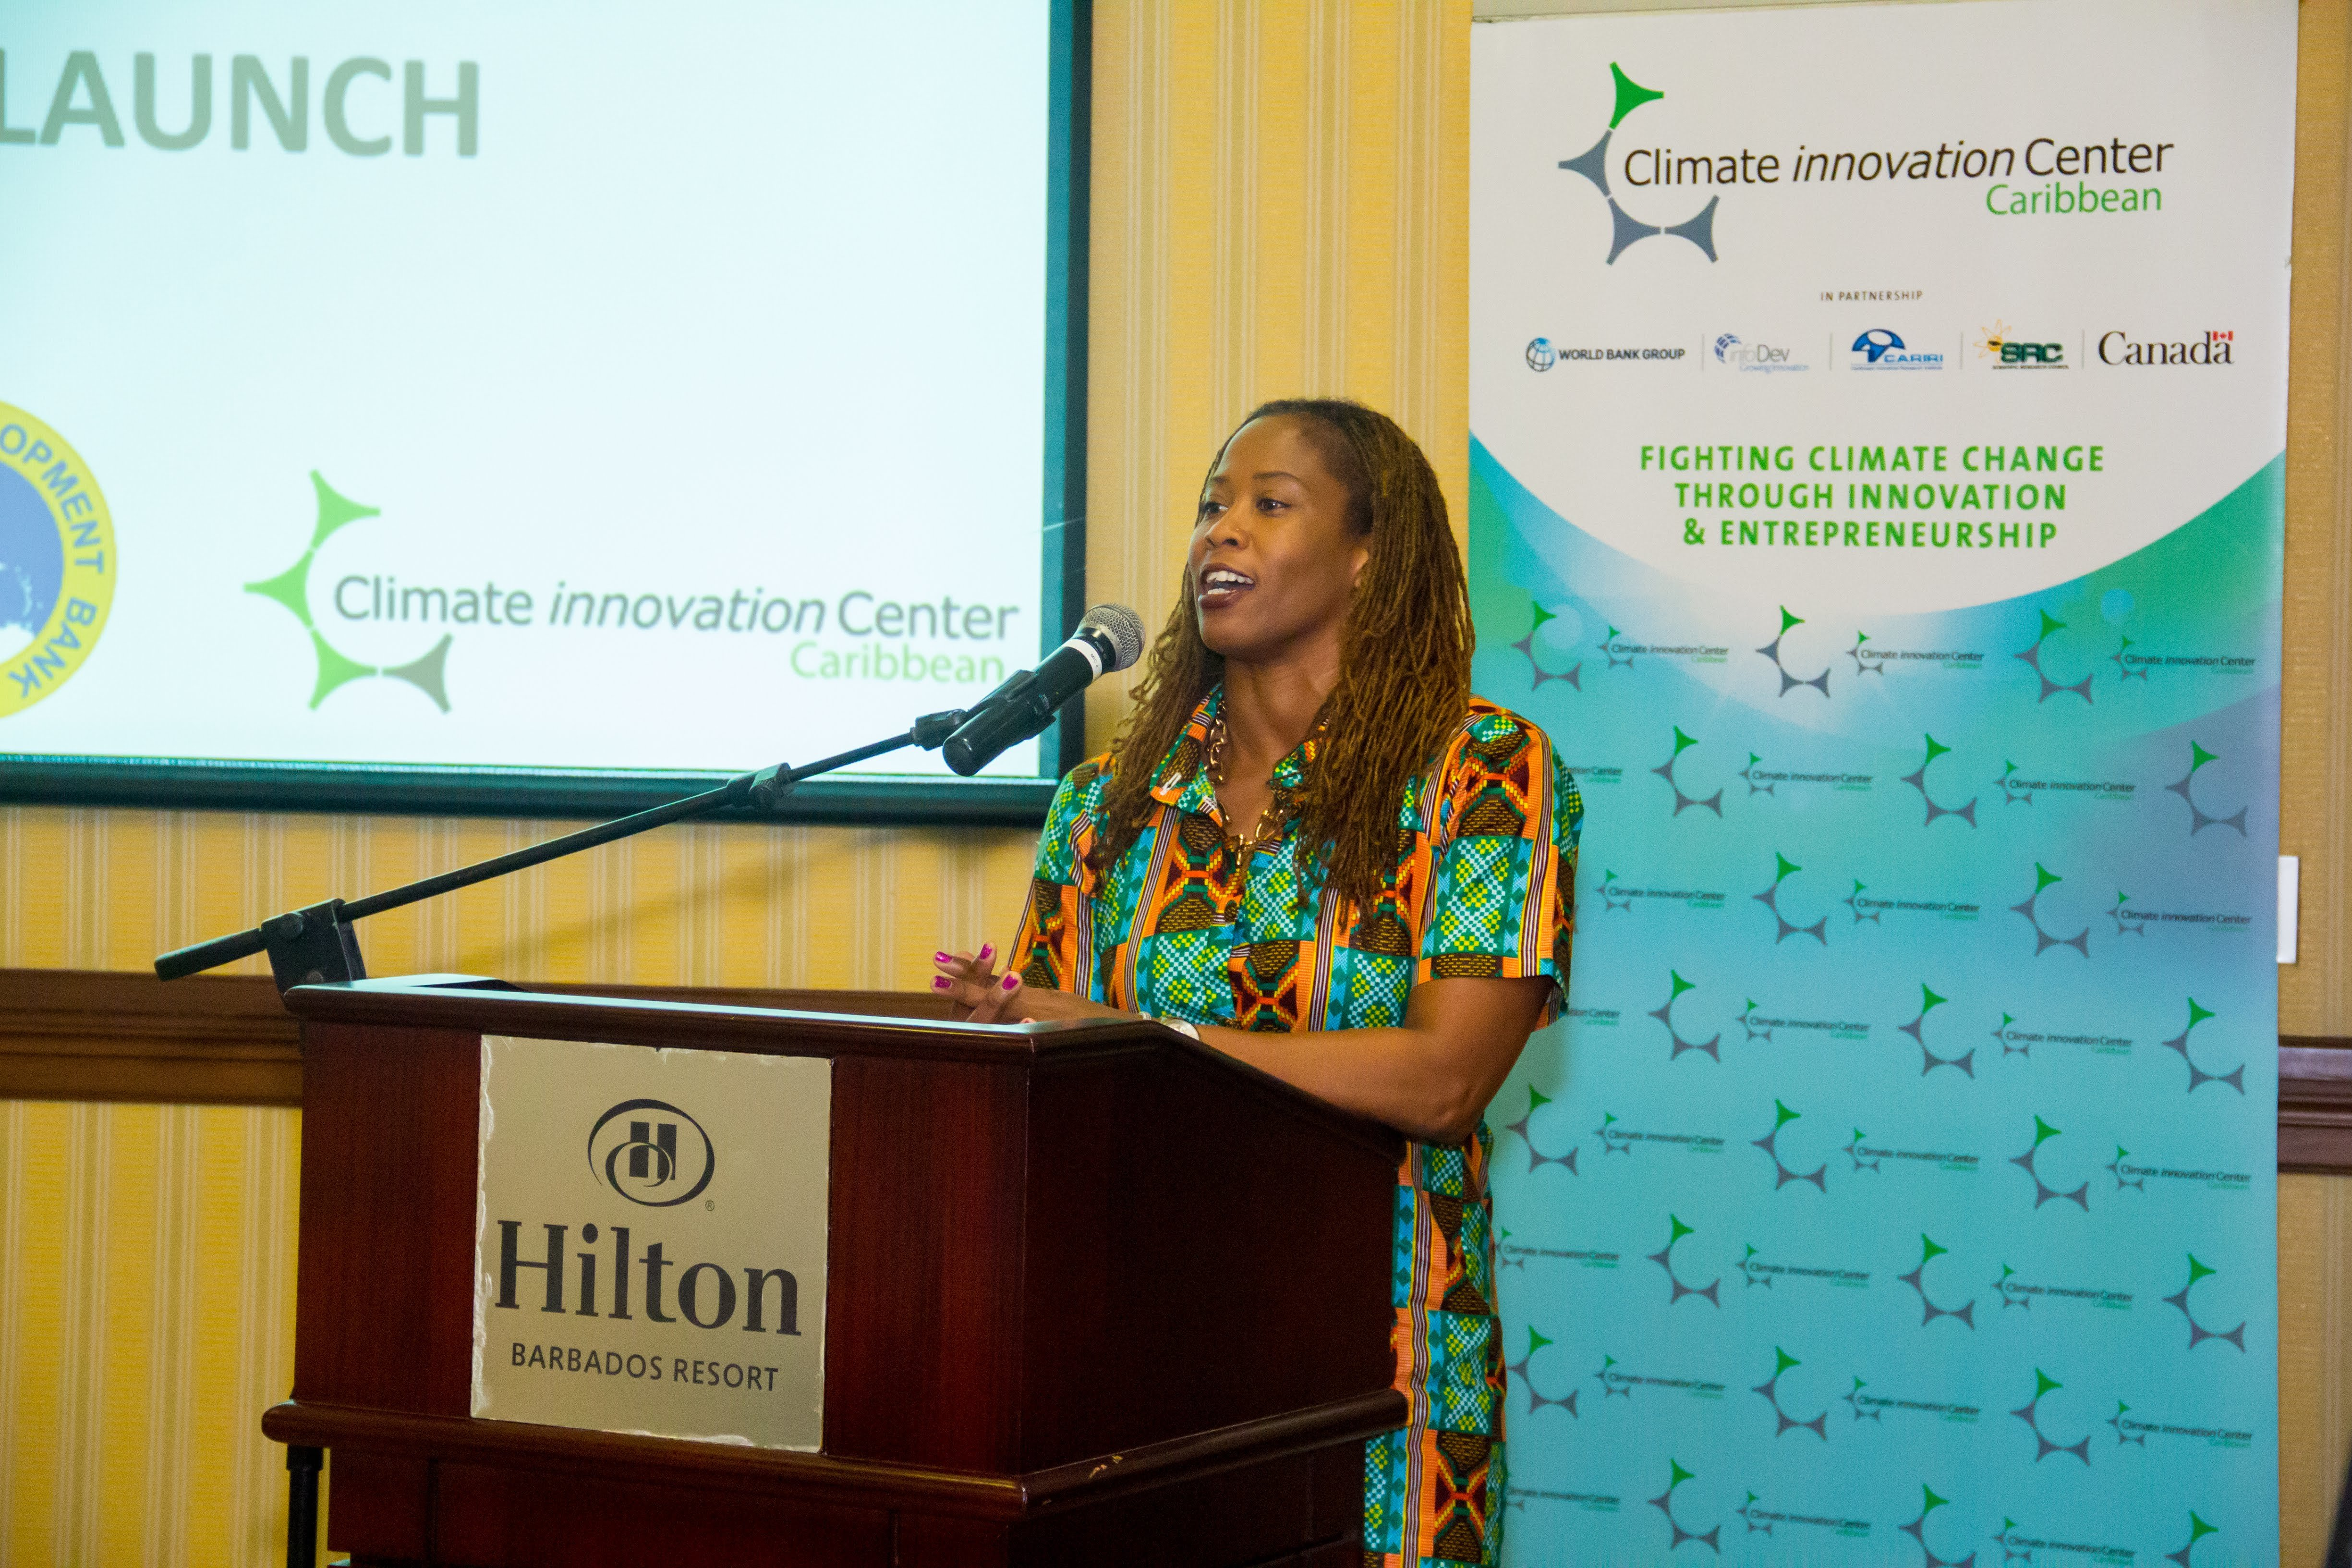 Lisa Harding, Coordinator, Micro, Small and Medium-Sized Enterprise, Technical Cooperation Division, CDB, believes supporting green tech entrepreneurs in the Region is critical to building climate resilience.